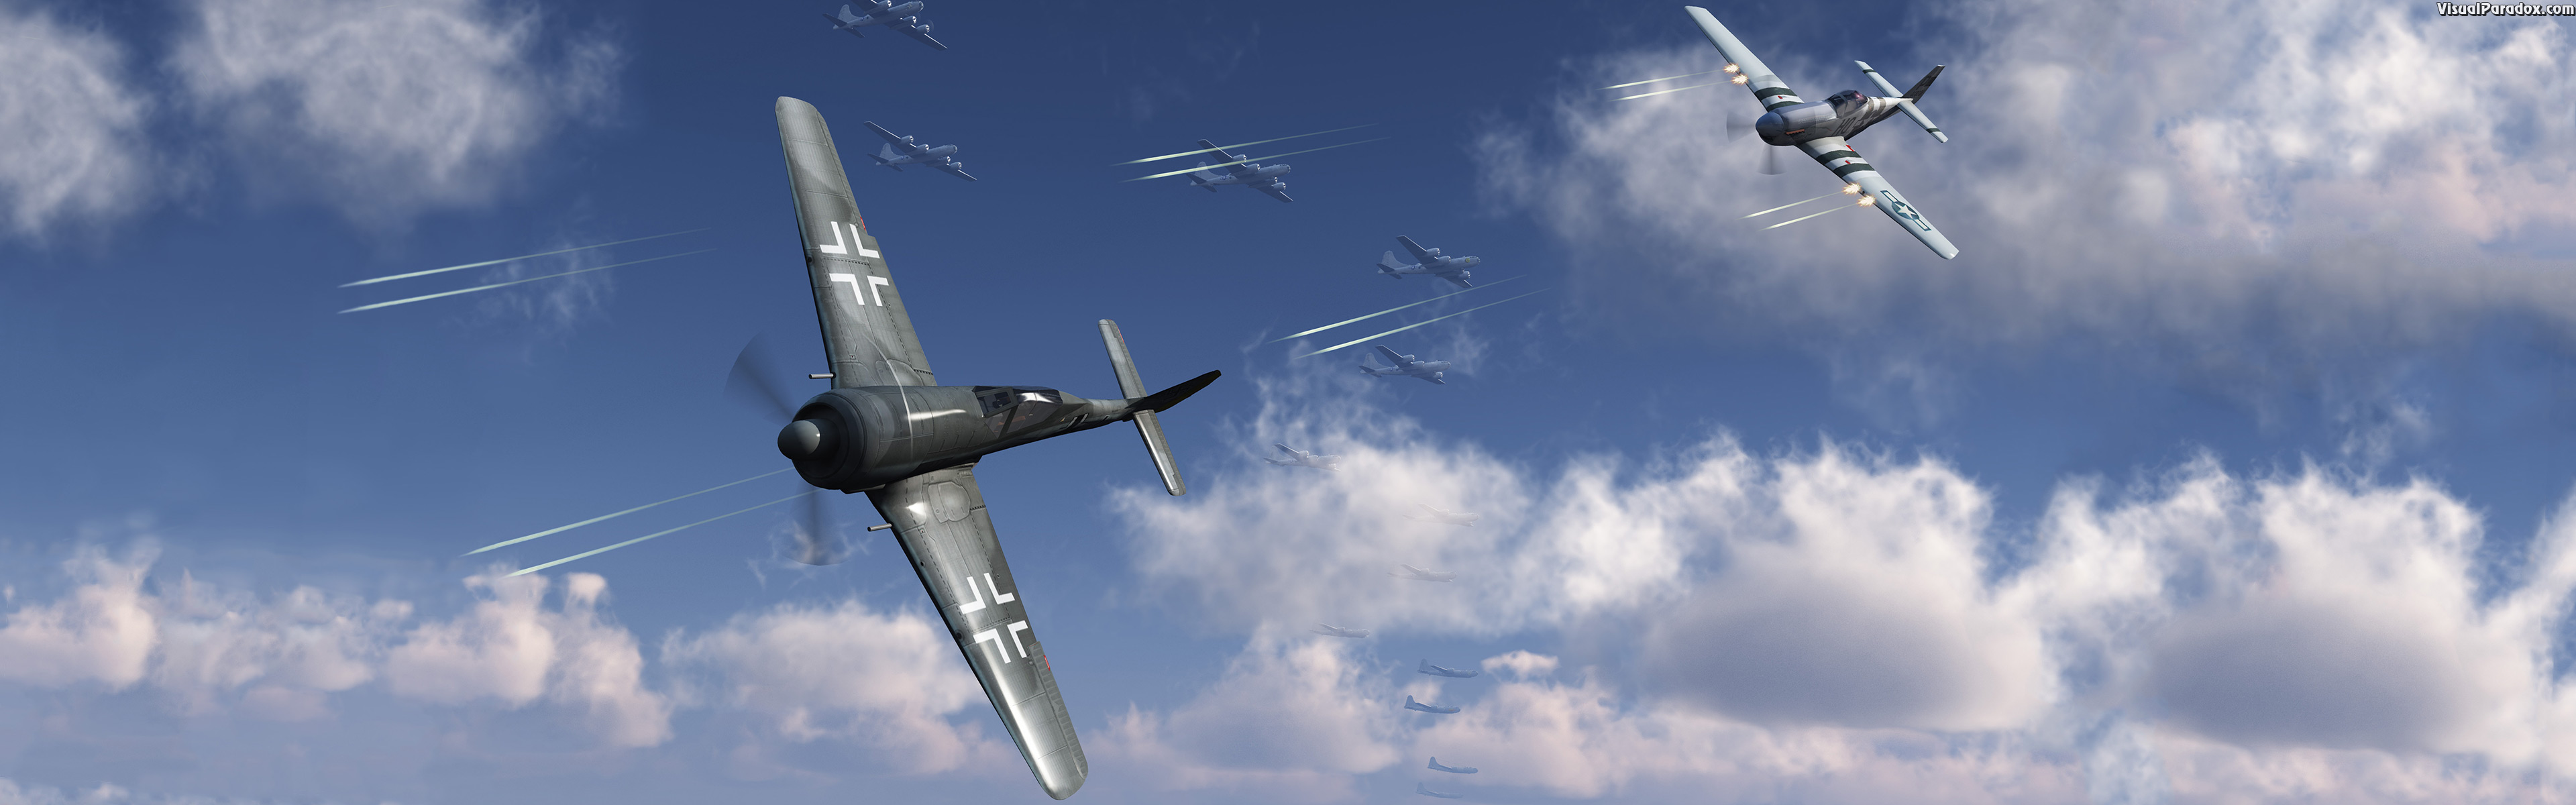 air, plane, fight, aerial, combat, mustang, p51, p51d, fw190a, tracers, shot, shoot, fire, b-29, b29, ww2, wwII, world war 2, 3d, wallpaper